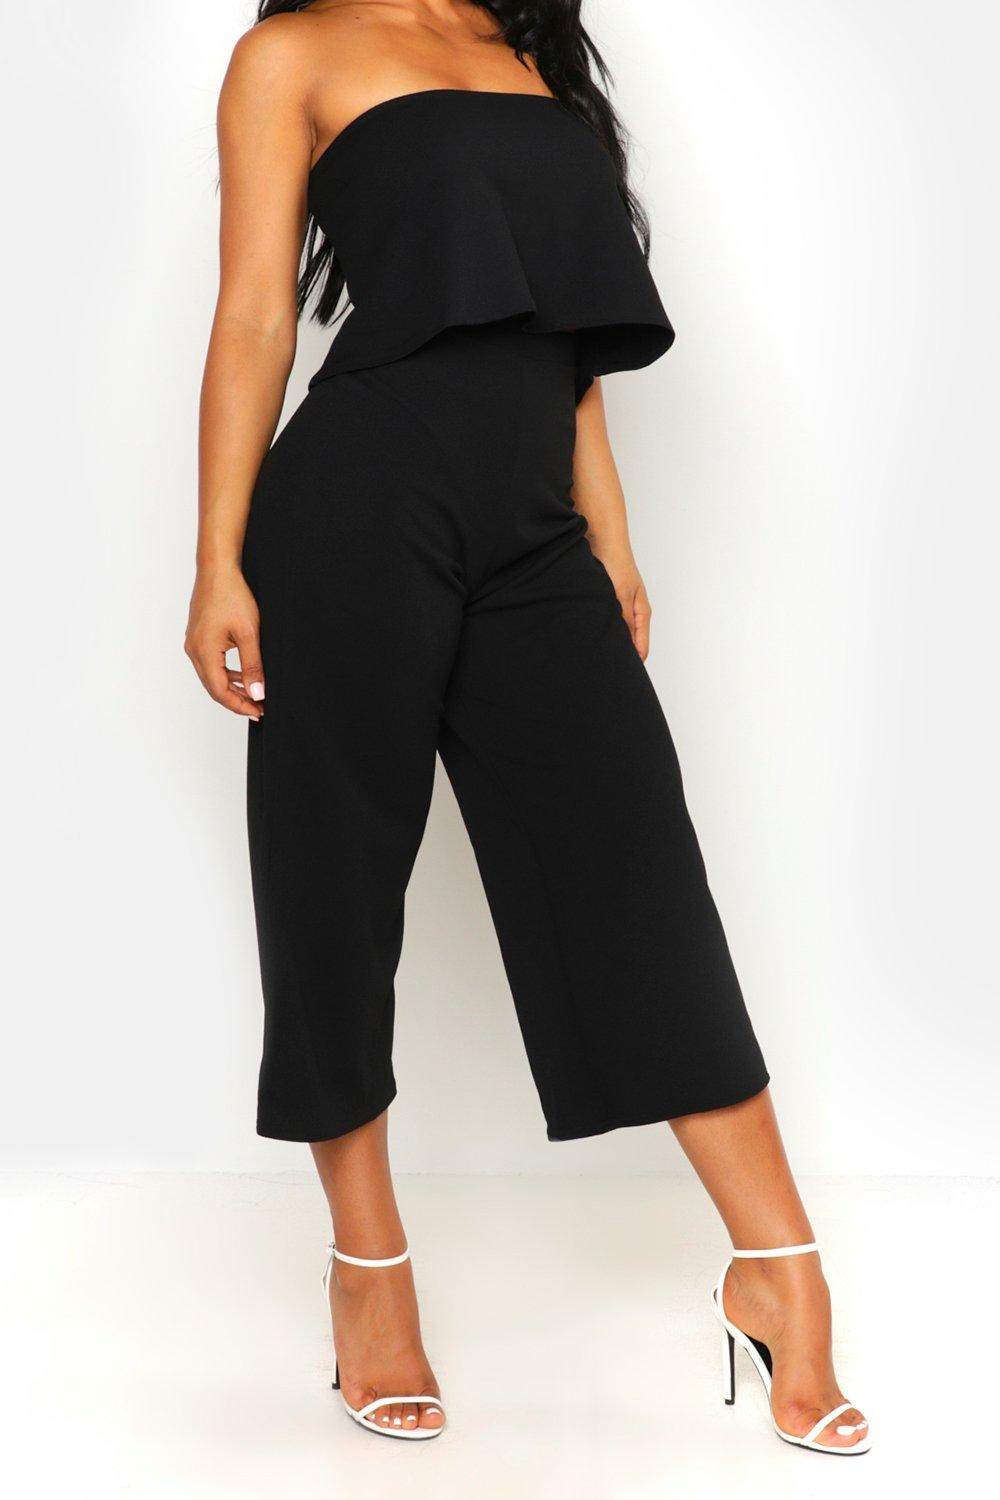 new boohoo womens cari bandeau top culottes co ord set in polyester ebay. Black Bedroom Furniture Sets. Home Design Ideas